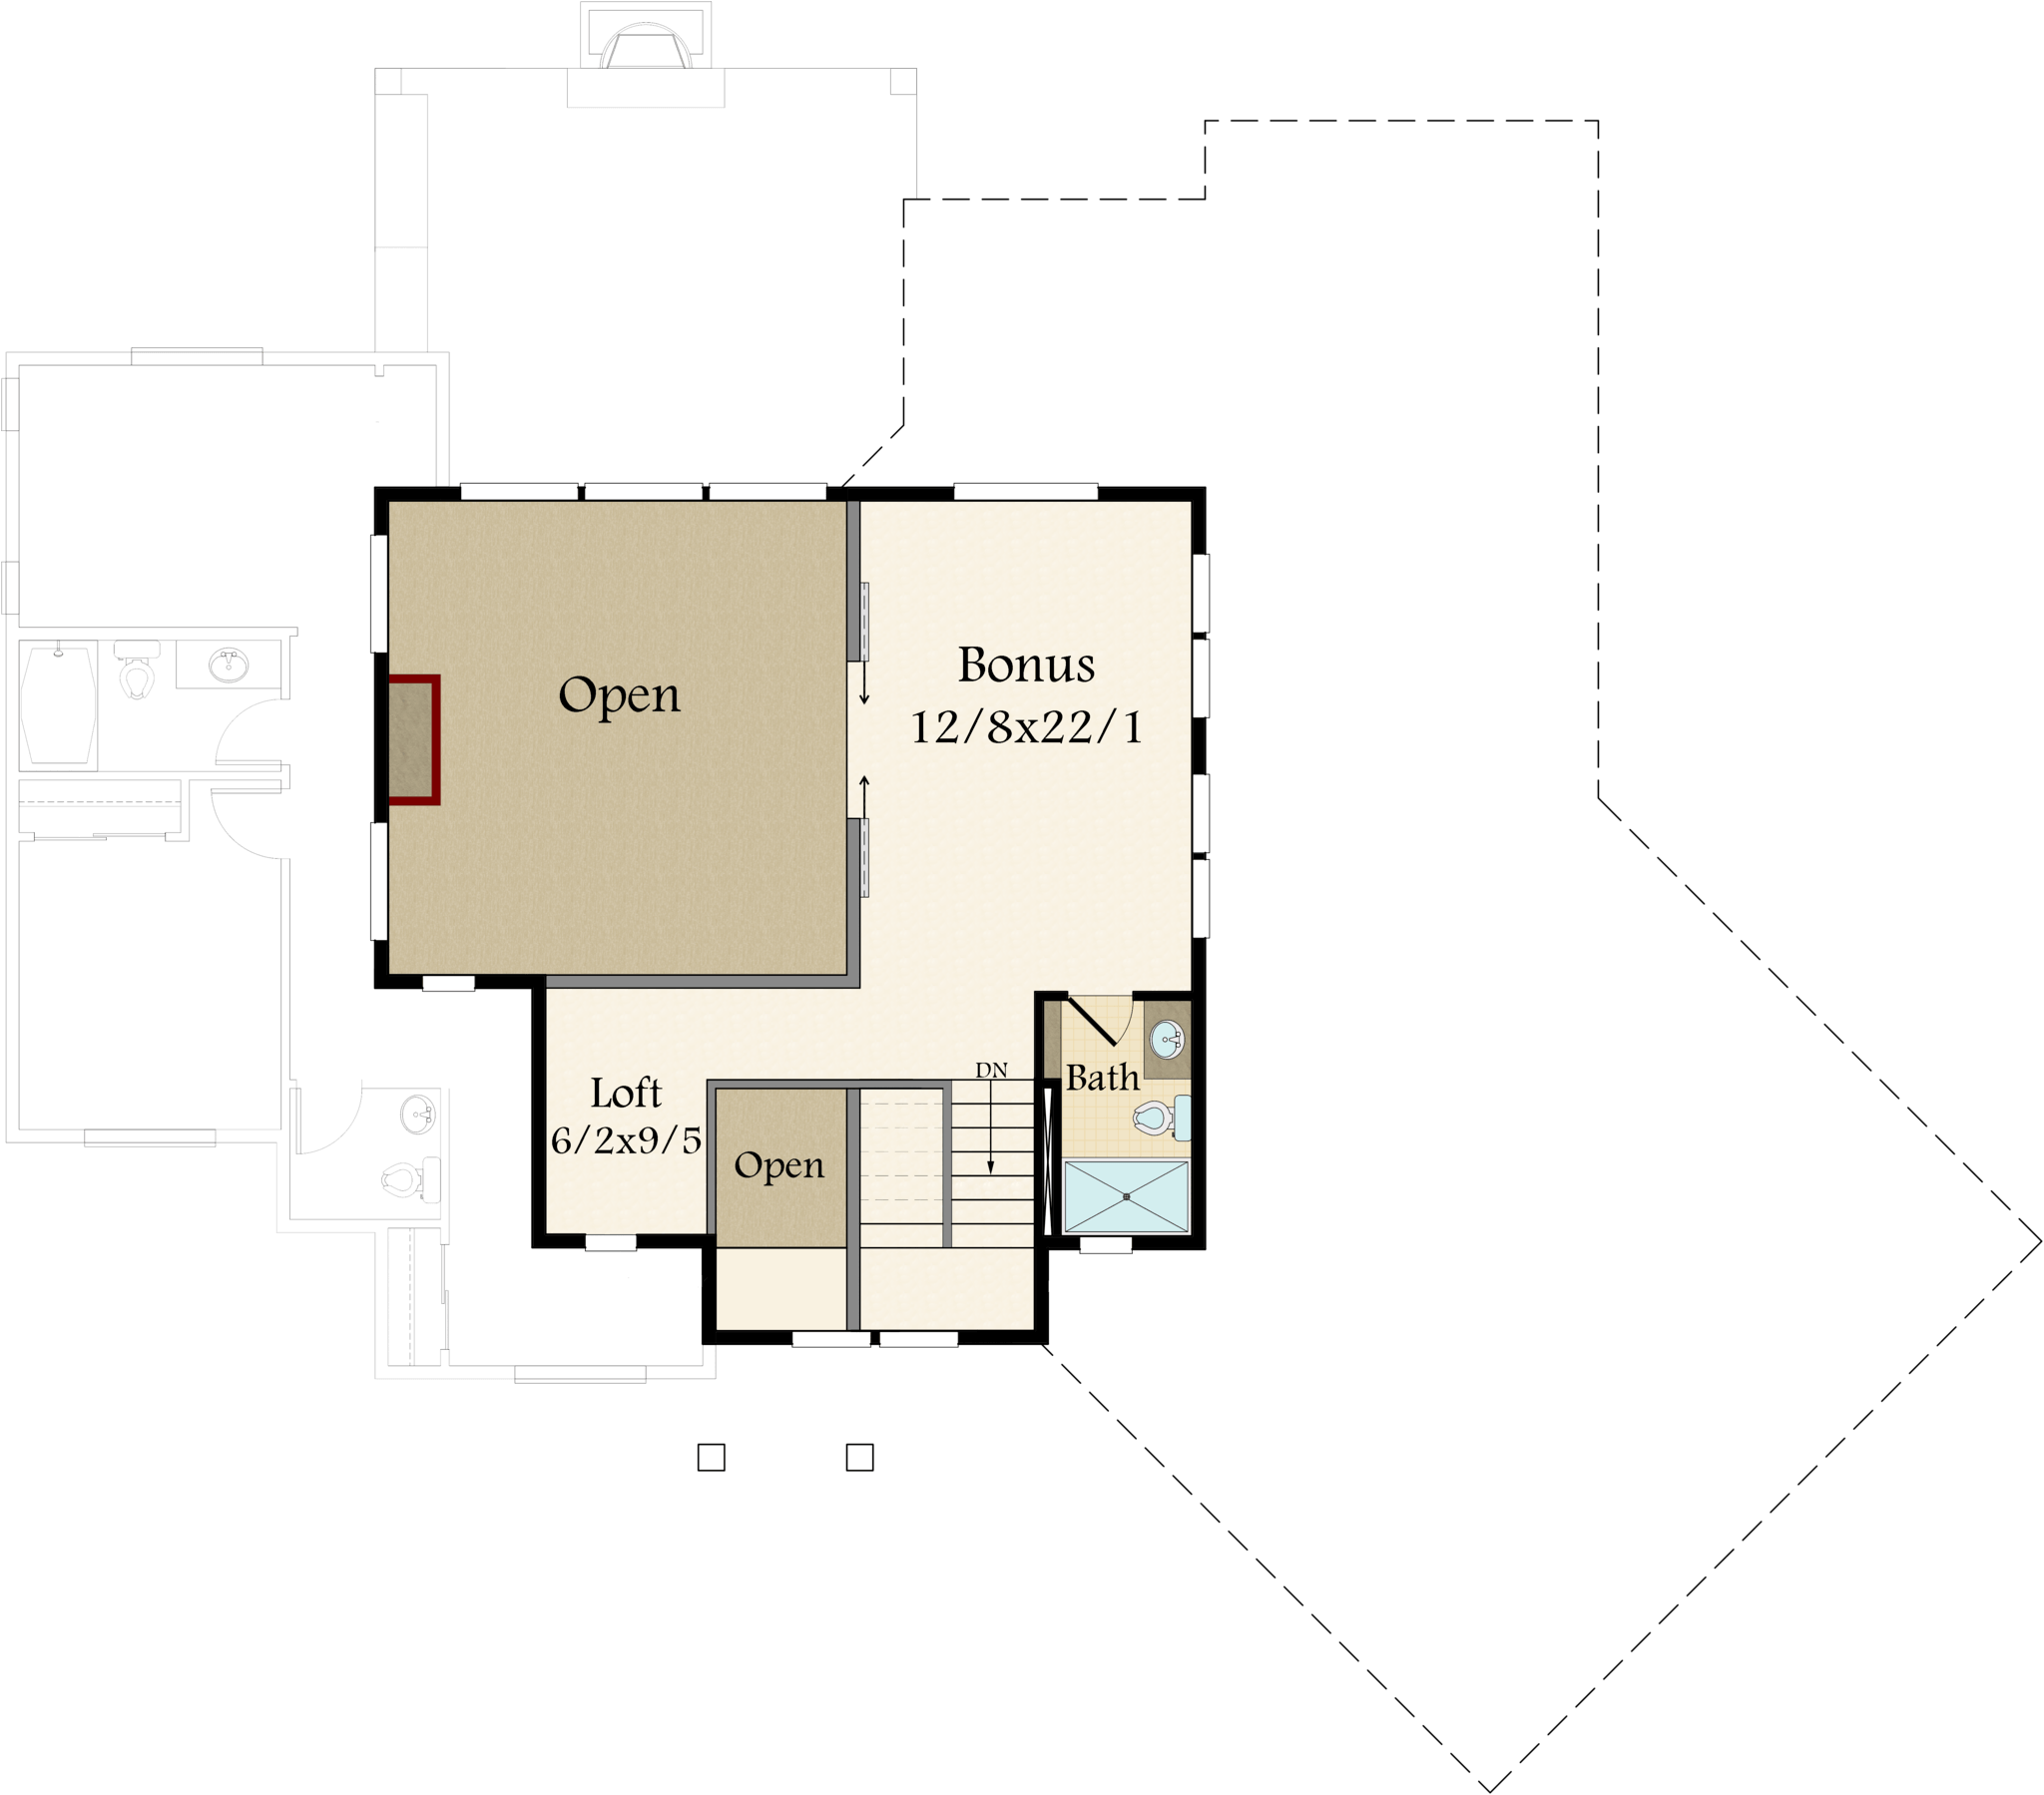 Detached Garage Plan By Mark Stewart Home Design: Modern 2 Story Farmhouse Plans With